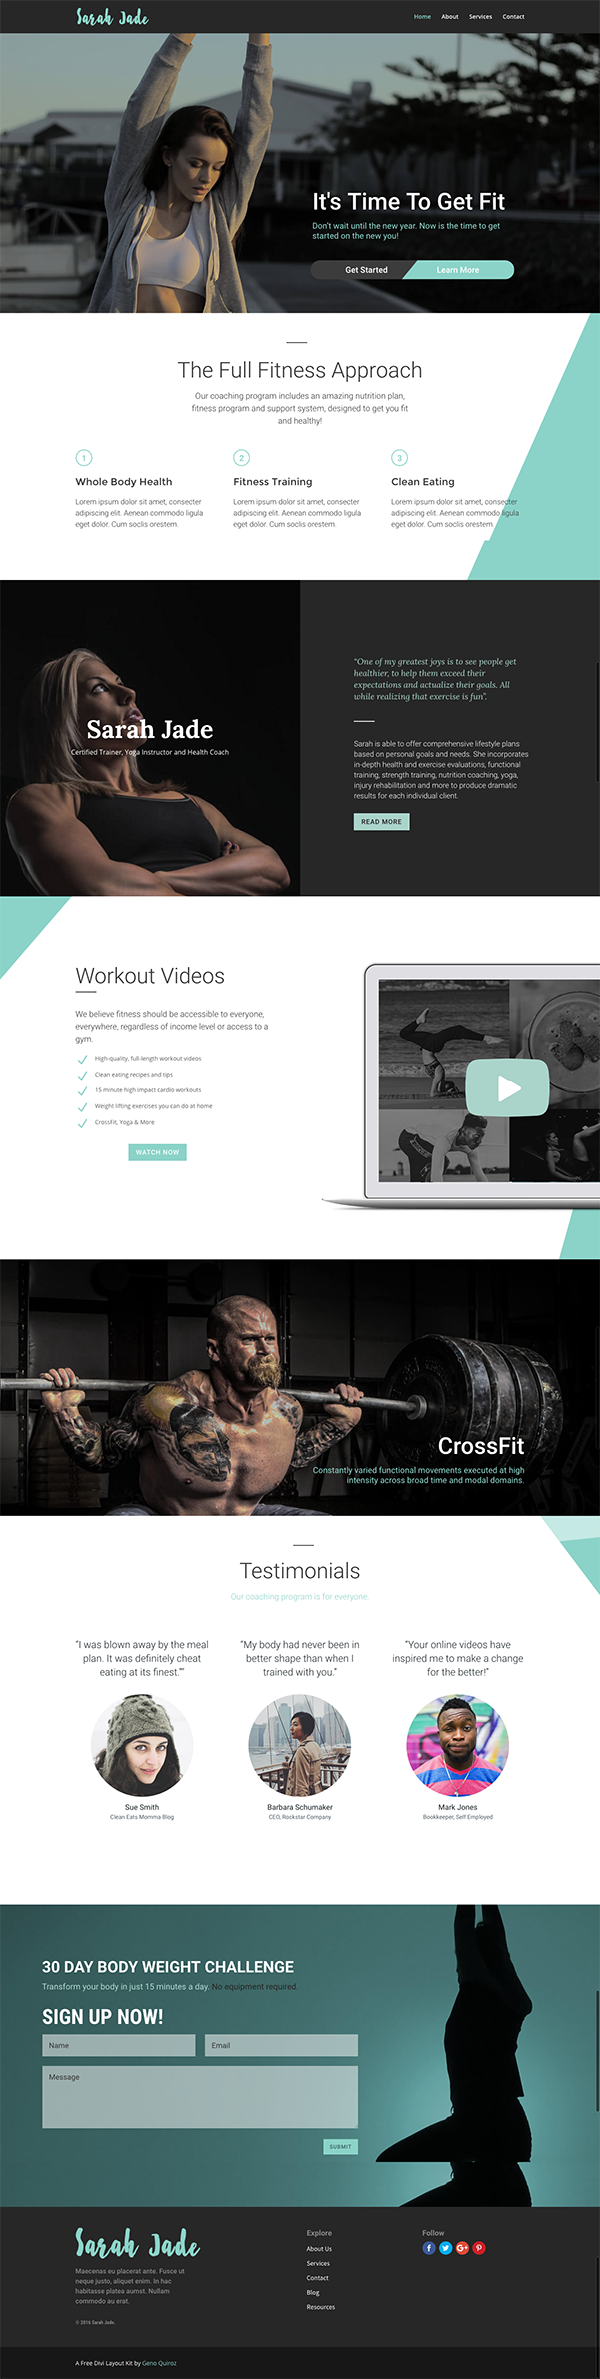 Divi-Crossfit-Fitness-Layout-Pack-Home